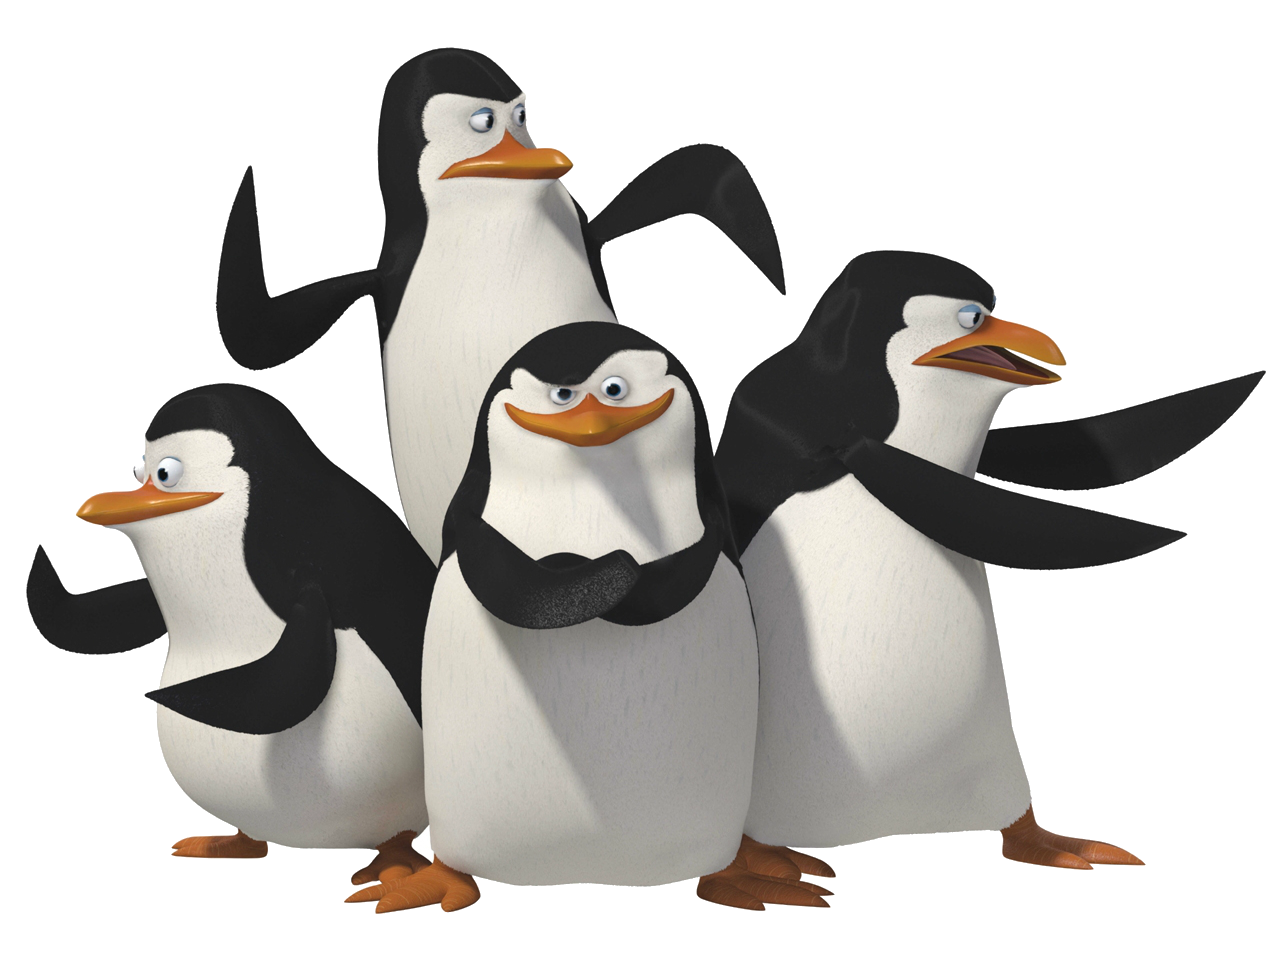 Cartoon Characters: The Penguins of Madagascar